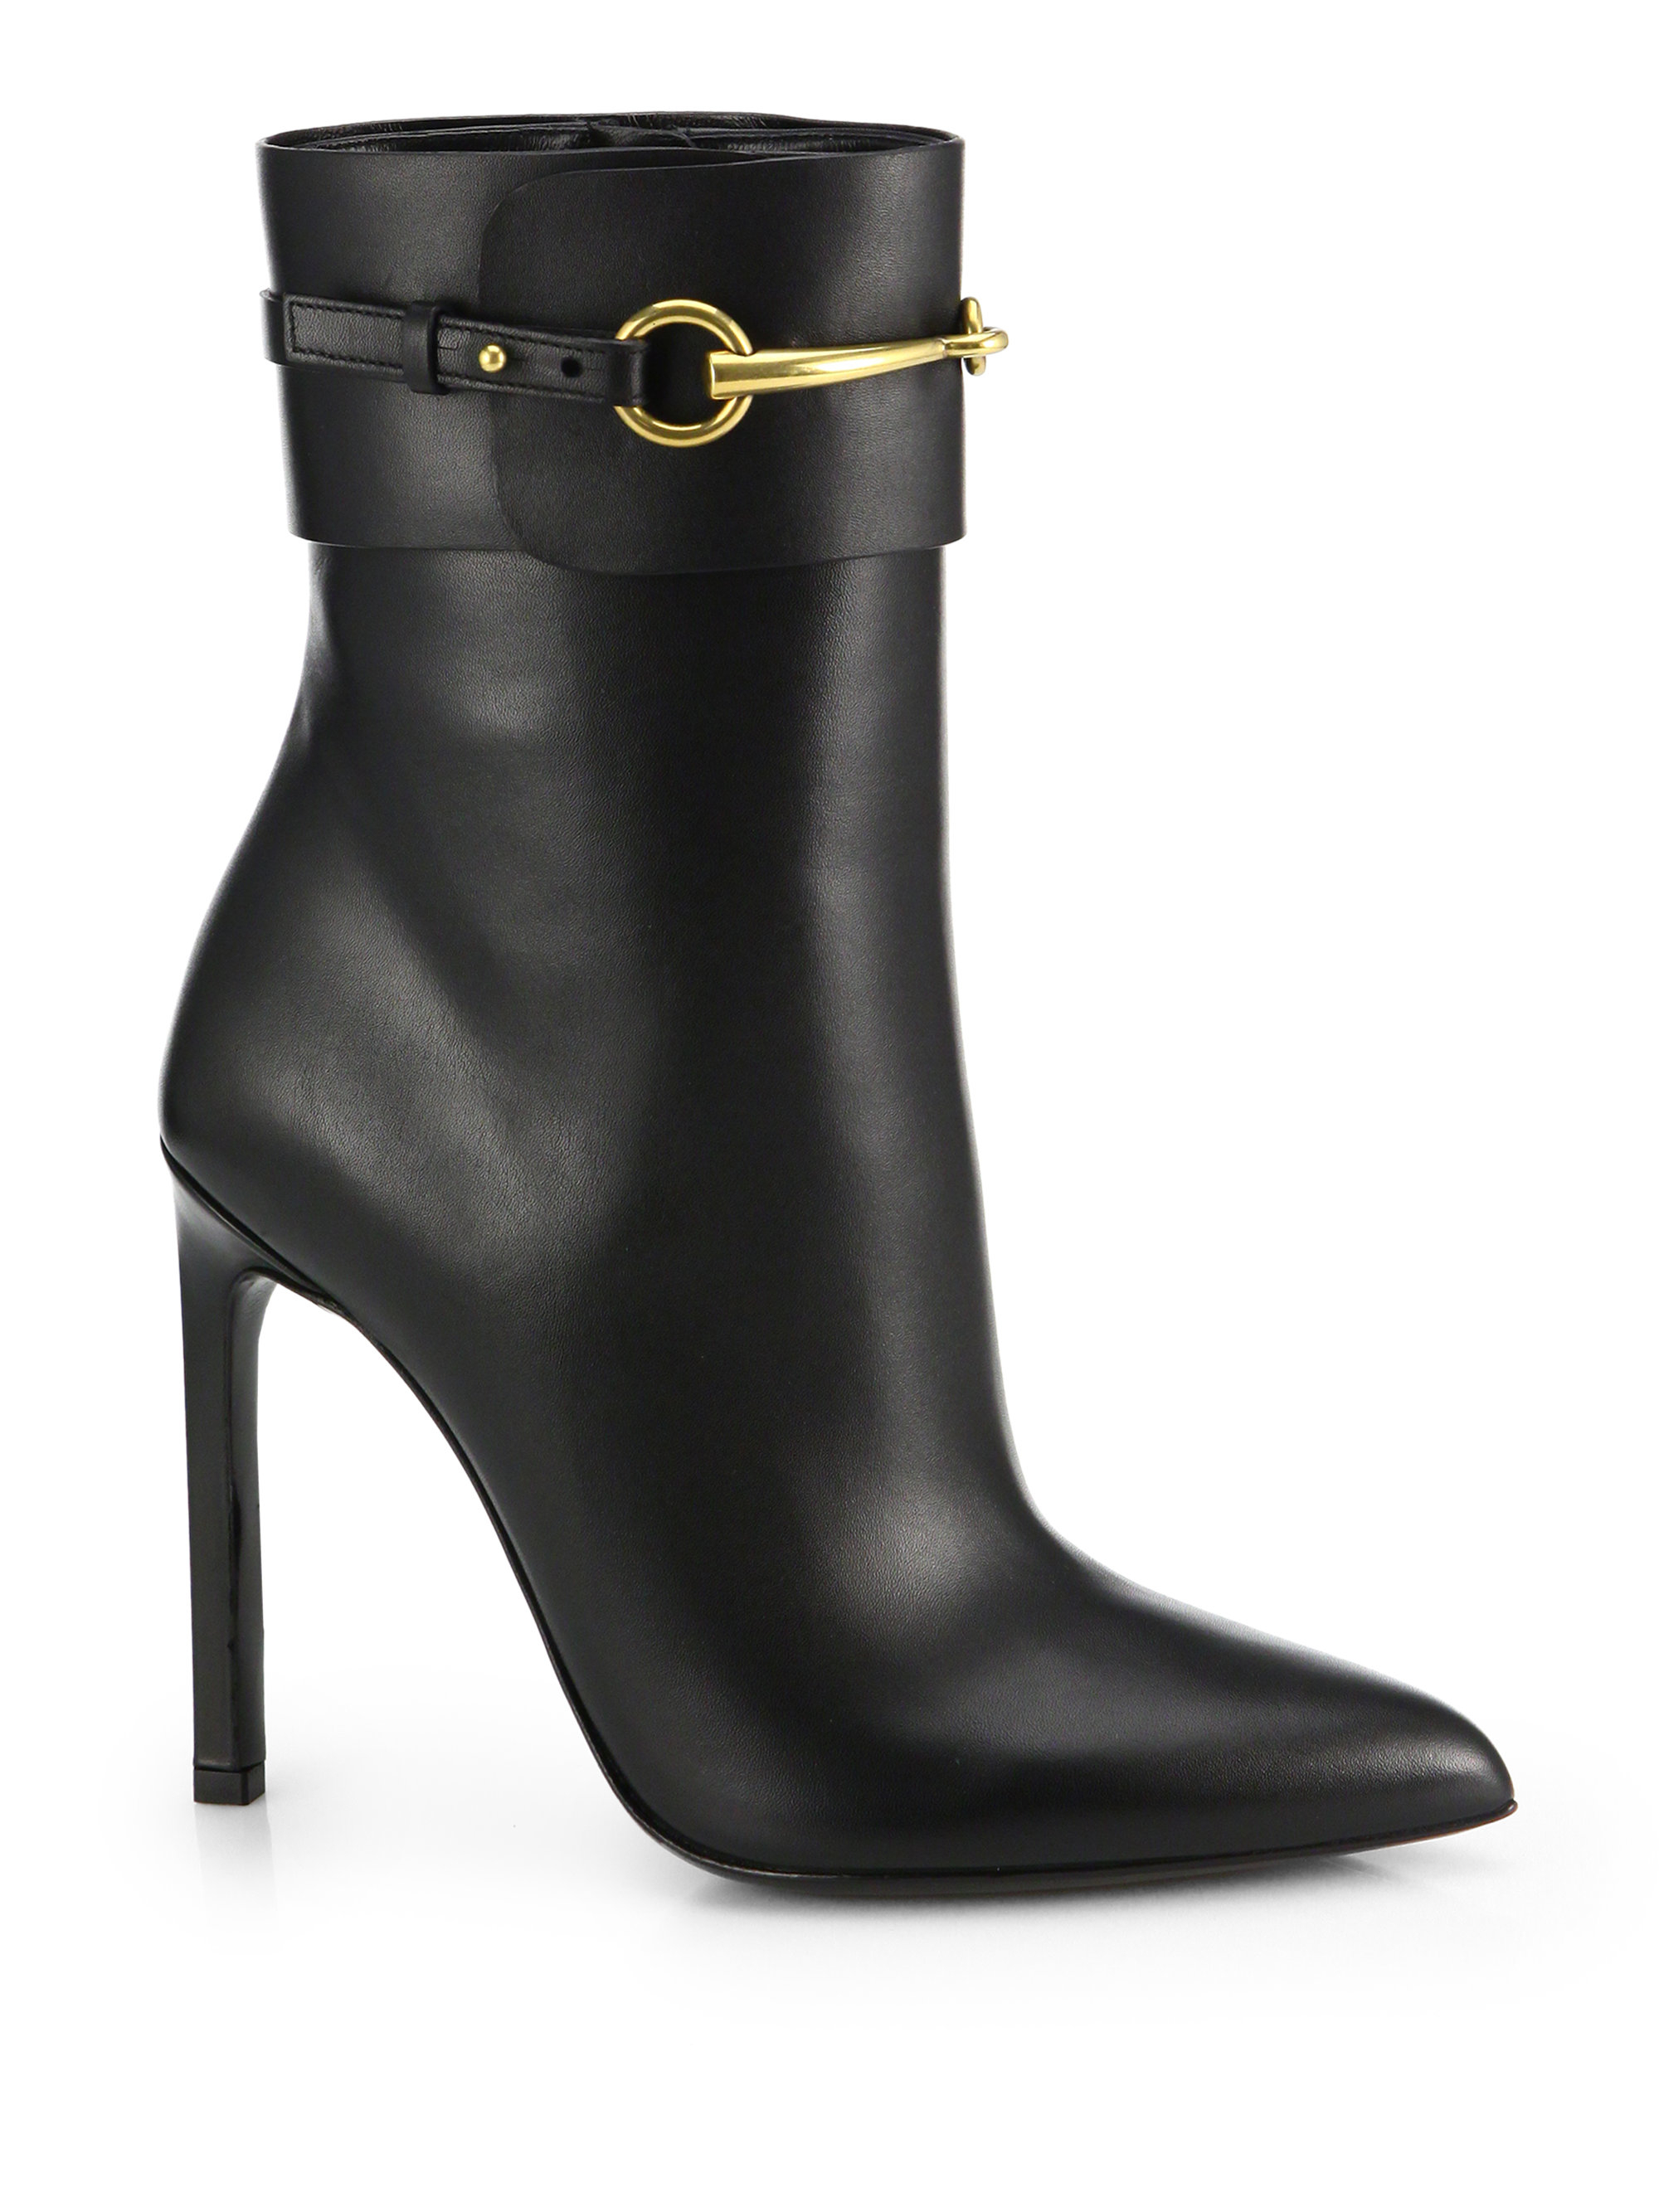 f8e4dd9af11d Lyst - Gucci Ursula Leather Horsebit Ankle Boots in Black